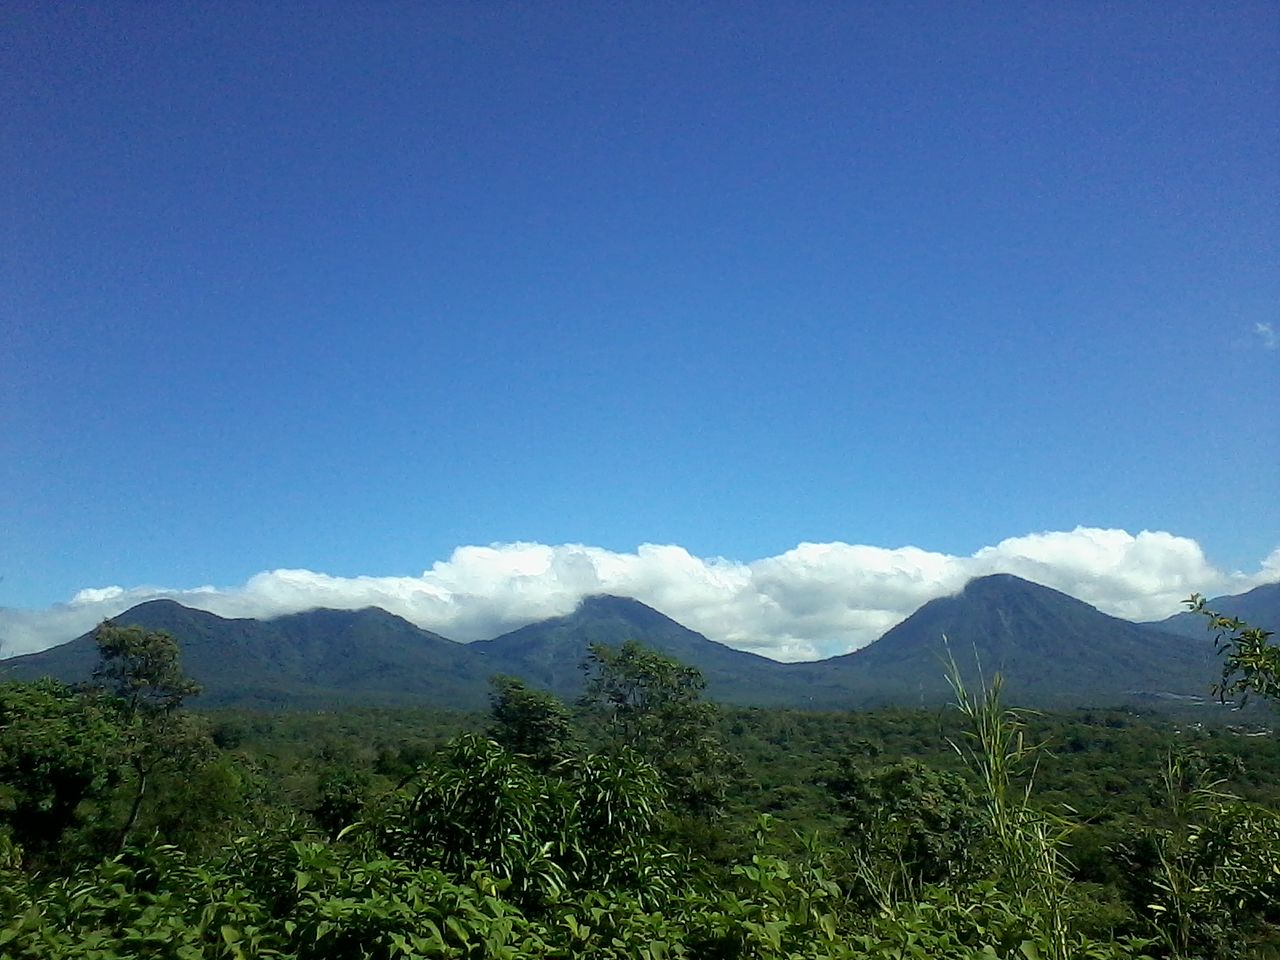 Mountain Range in Salcoatitlan, El Salvador